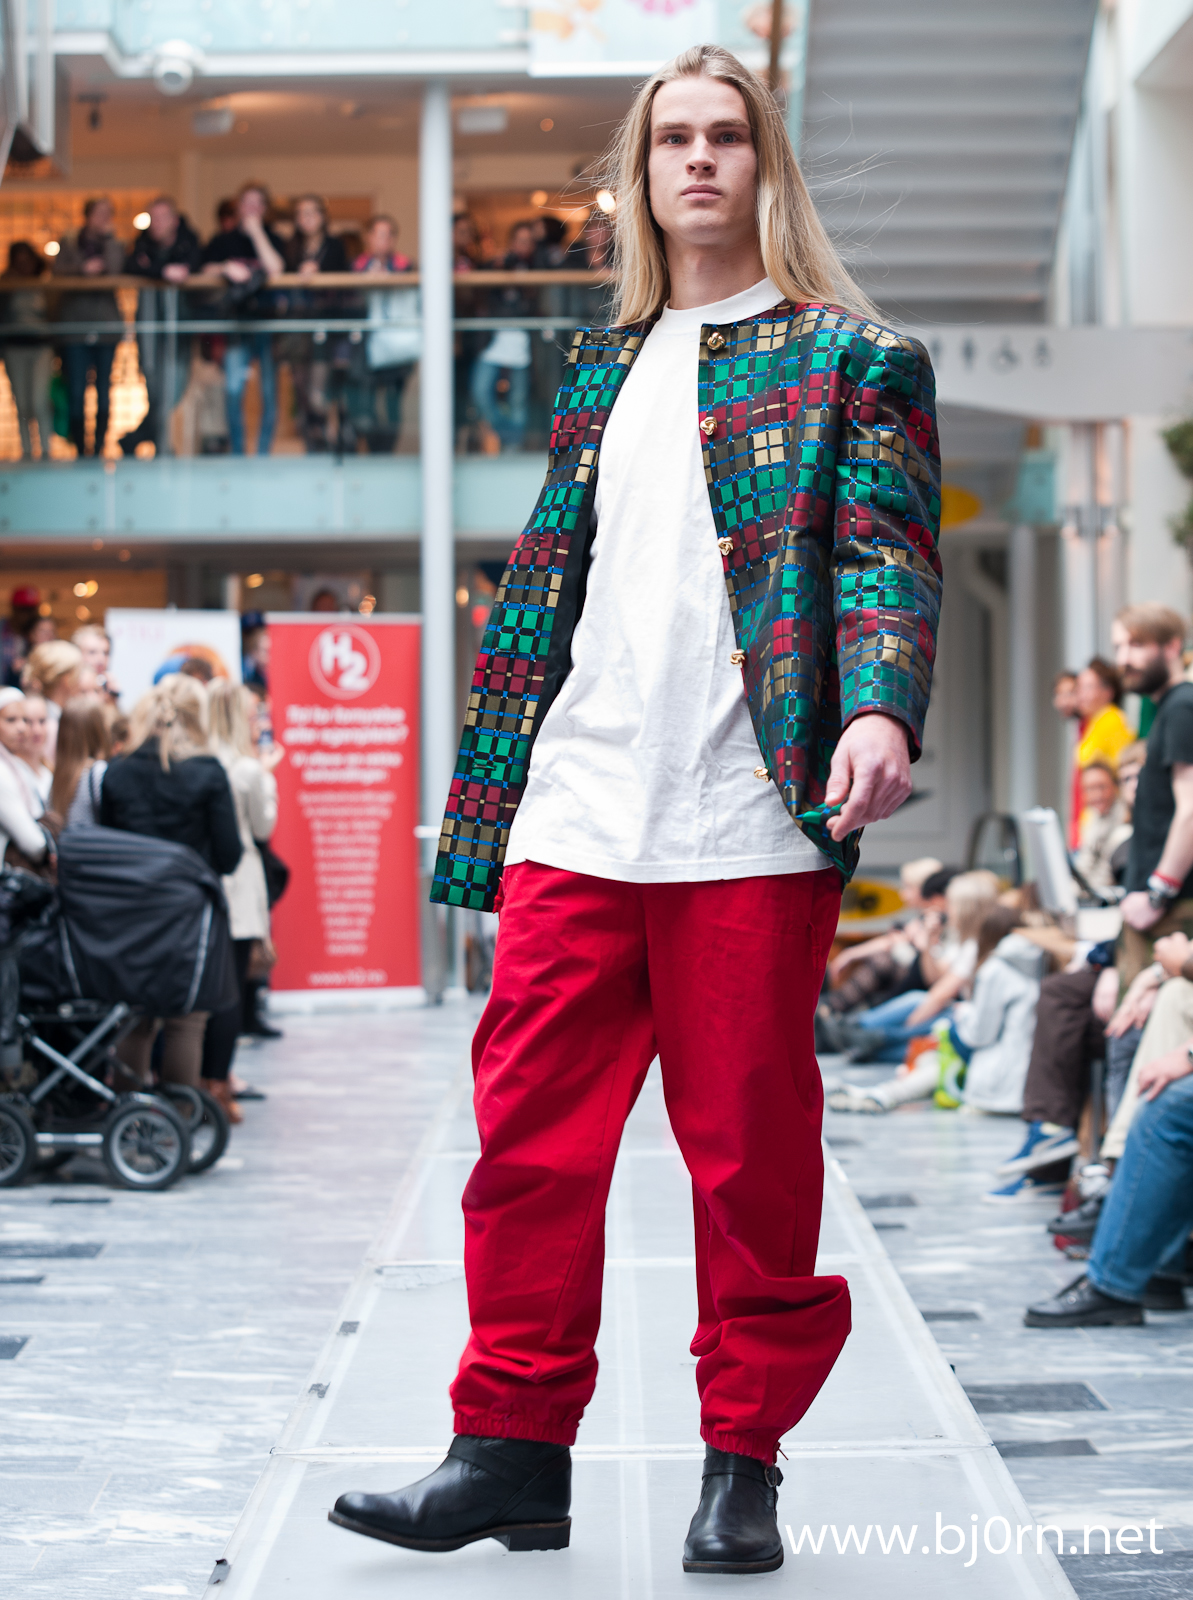 photo: Bjørn Christiansen, Fretex Unika Fashion Show at Mercursenteret